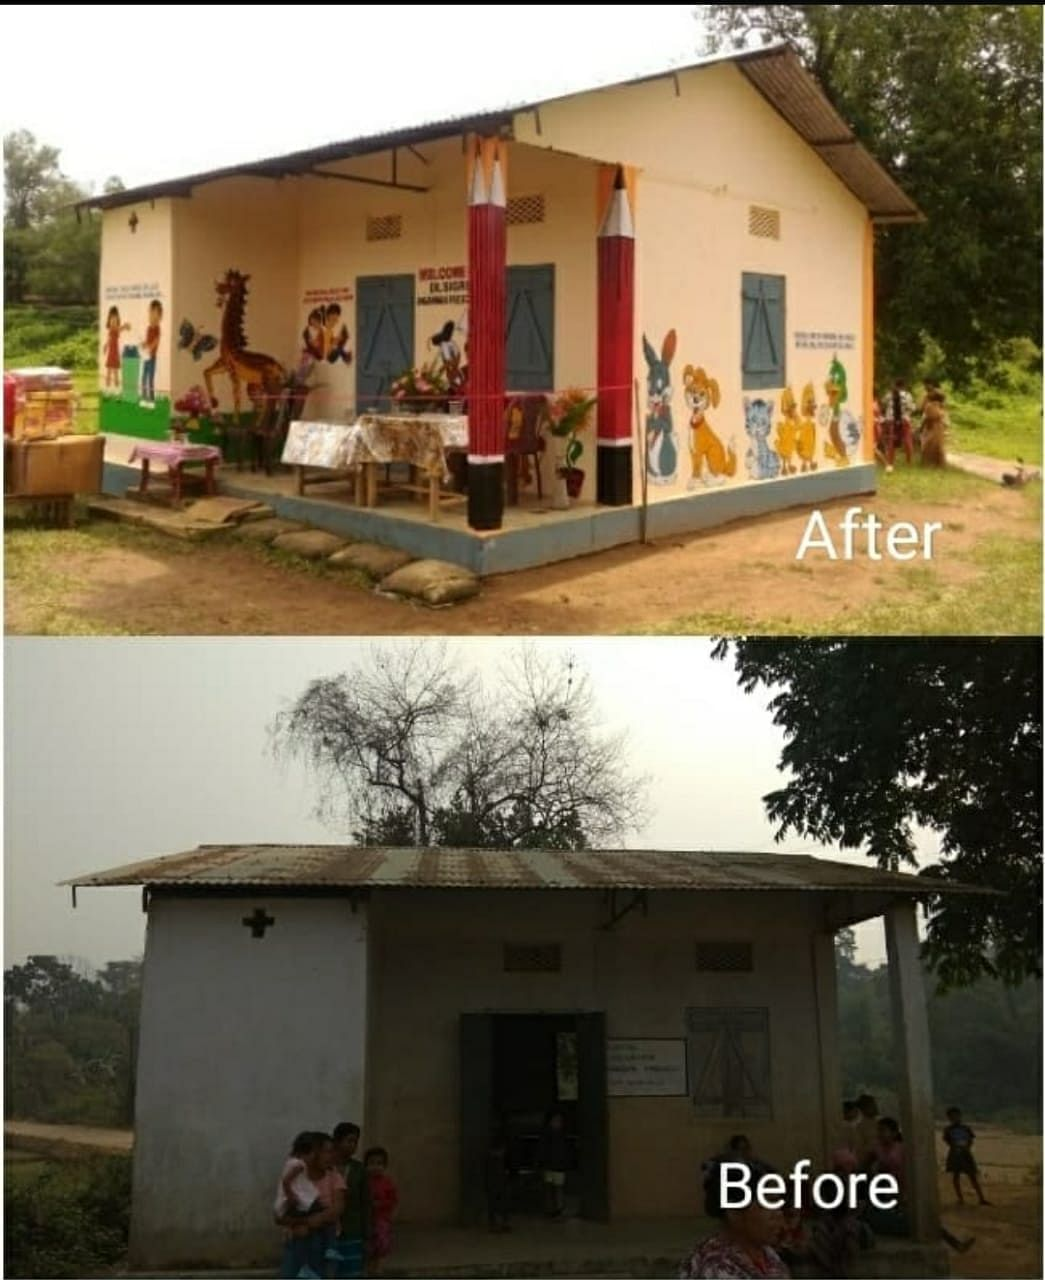 The anganwadi centre near the Songadinggre Lower Primary School in Dadenggre in Meghalaya's West Garo Hills, as it looked before and after the renovation